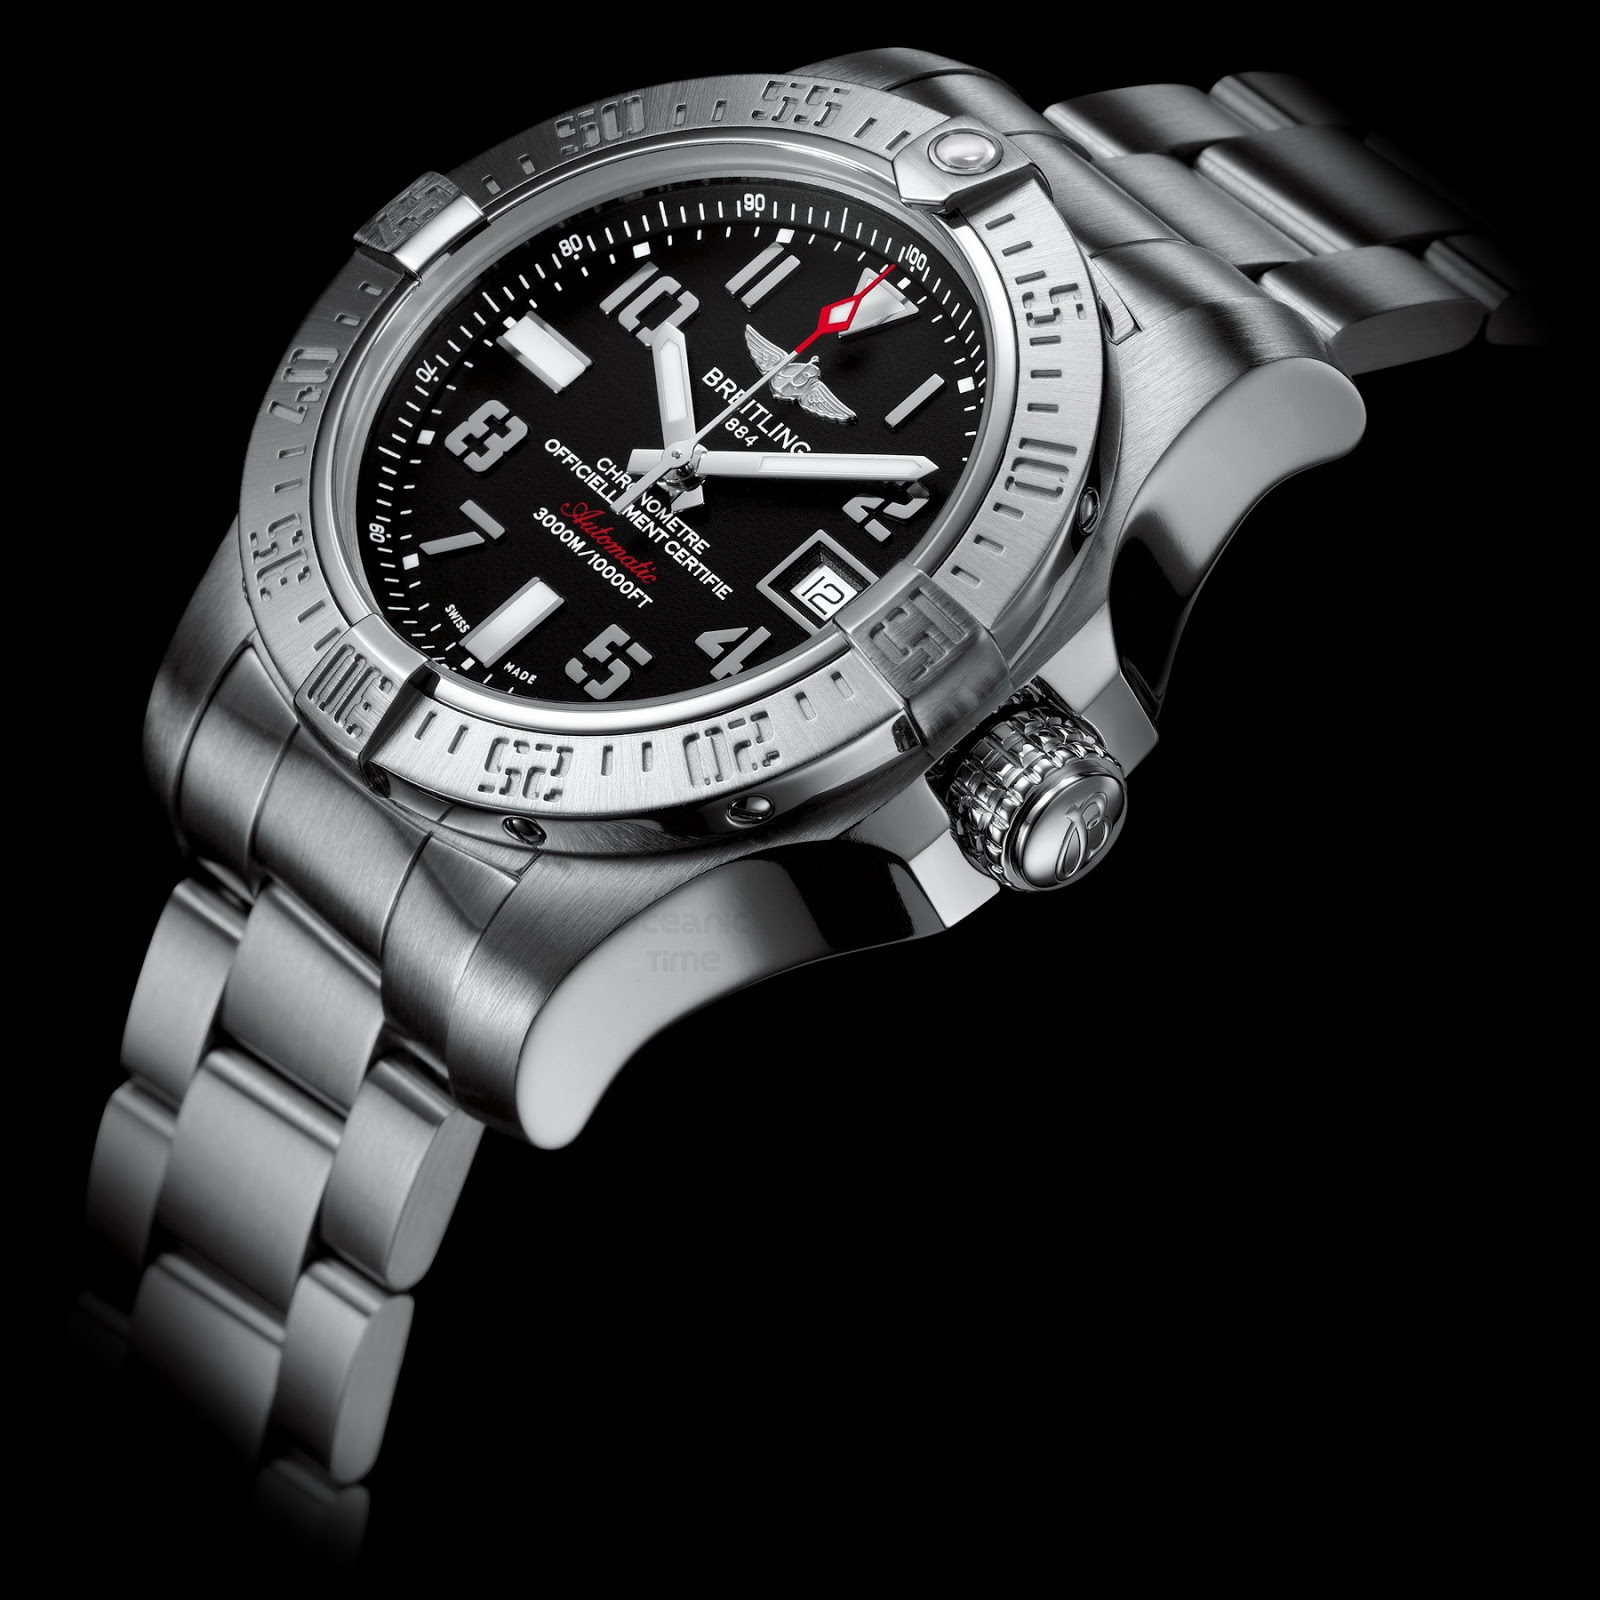 Vuestro favorito del día - Página 3 1463360d1397975203-tall-chunky-mechanical-watches-bretling-avenger-ii-seawolf-02